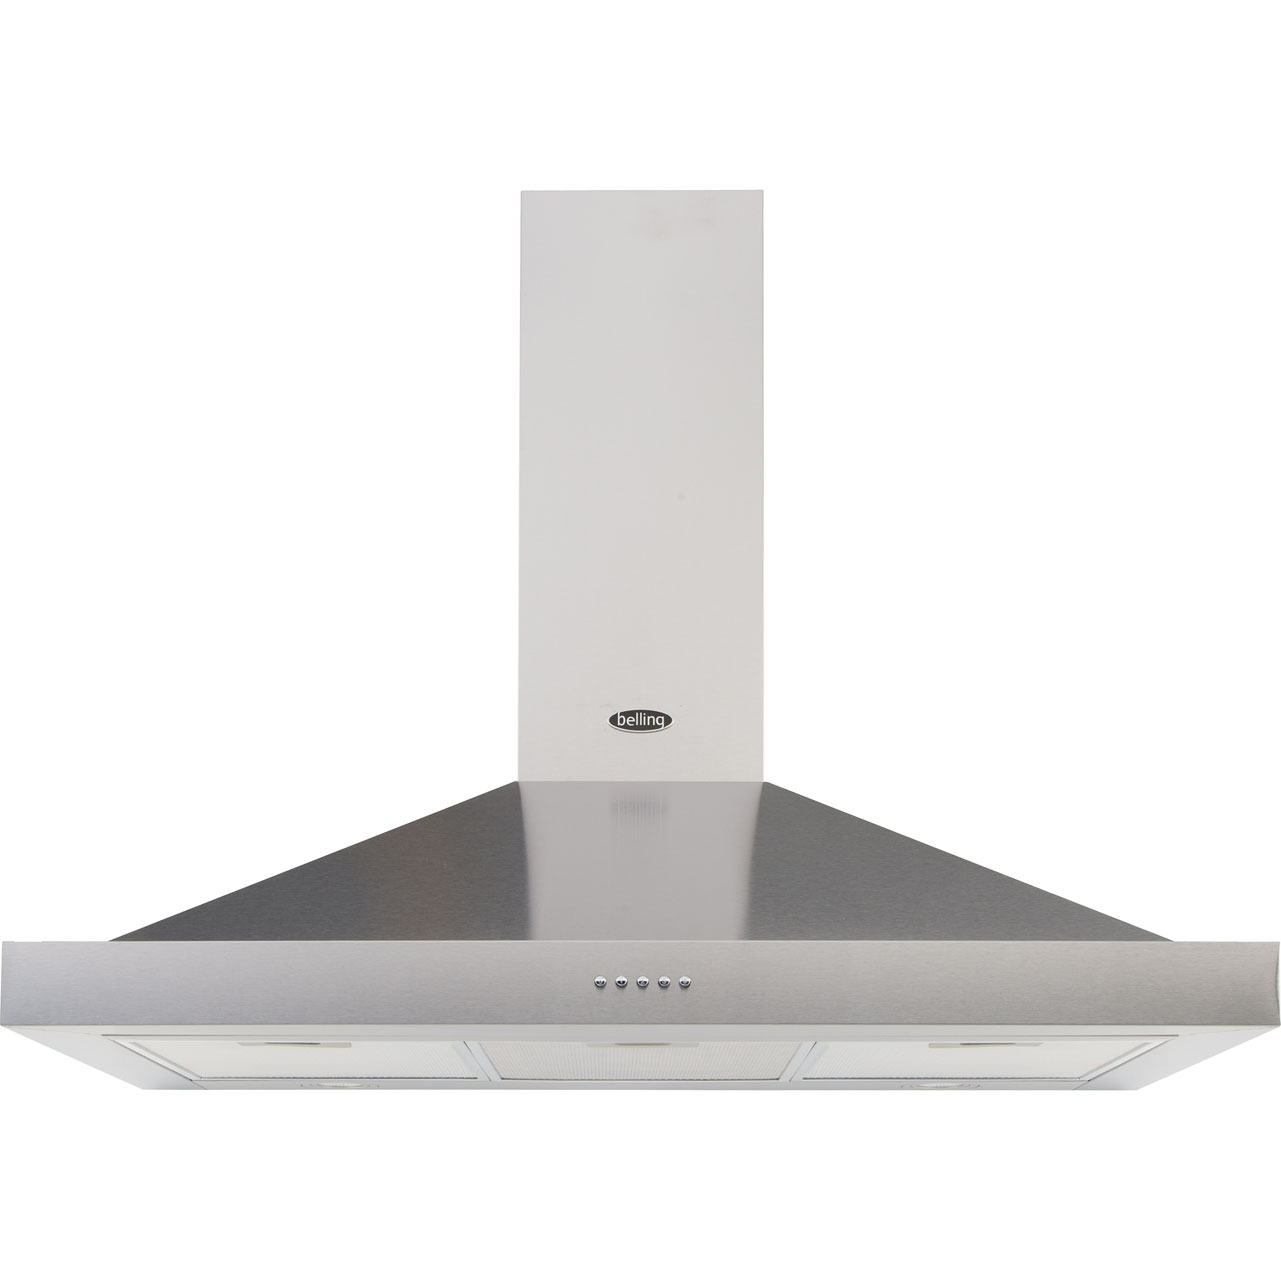 Belling 110DBCHIMMK3 Integrated Cooker Hood in Stainless Steel